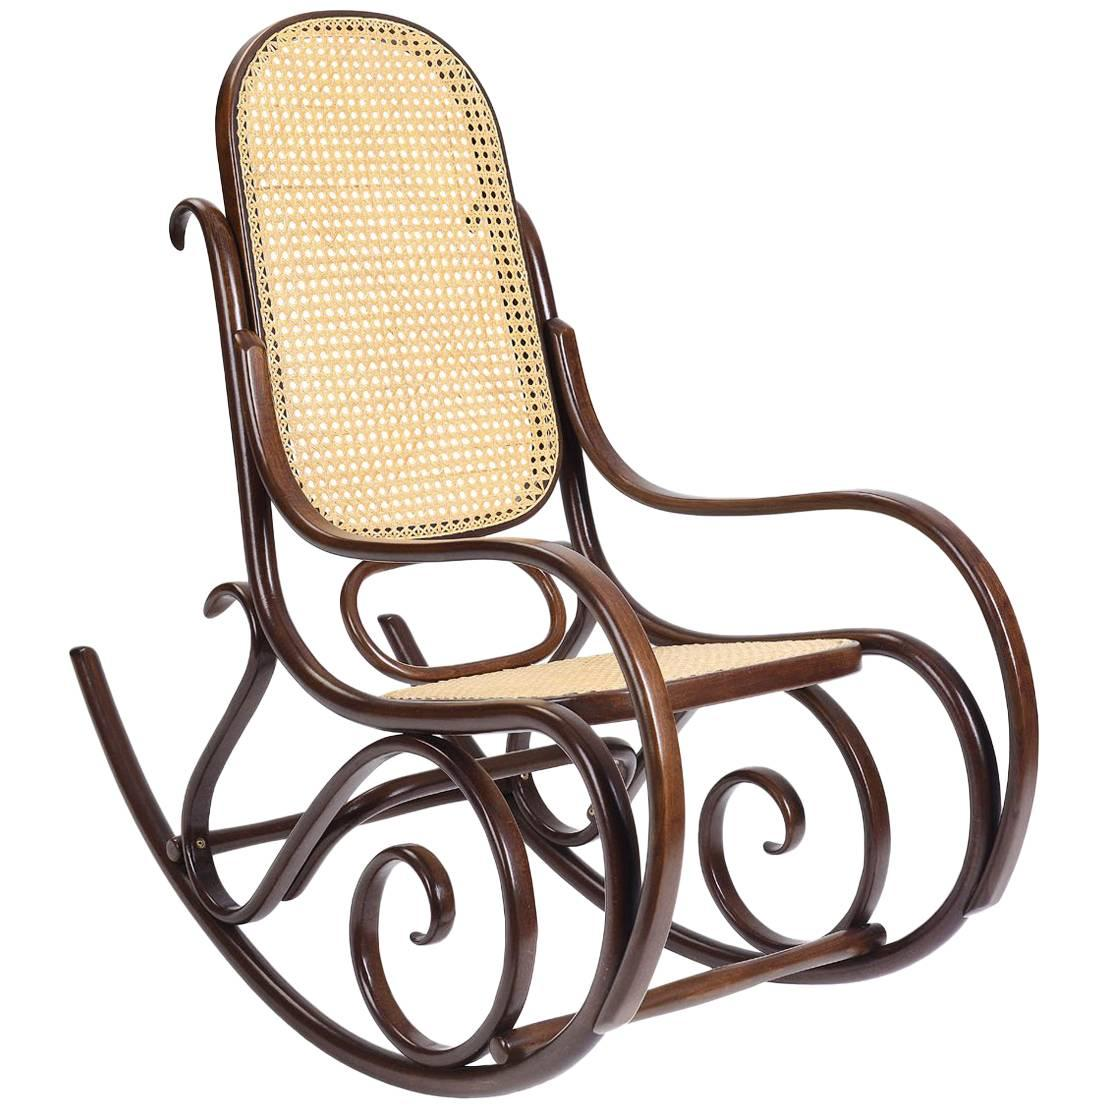 Mexico Chair Schaukelstuhl Schaukelstuhl Lounge Rocking Chair Contemporary Rocking Chair In Solid Wood